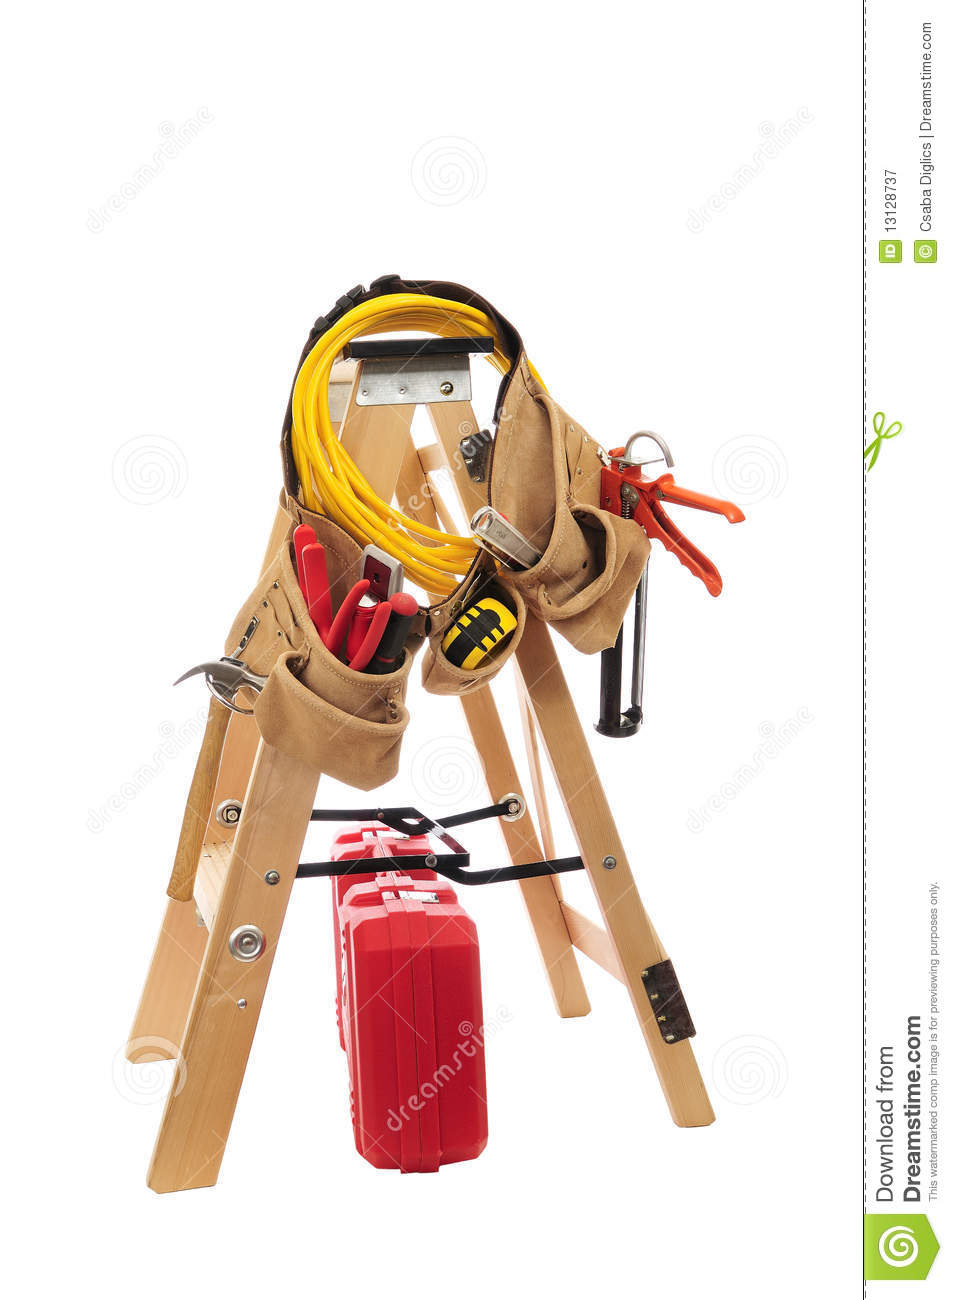 Ladder with tools